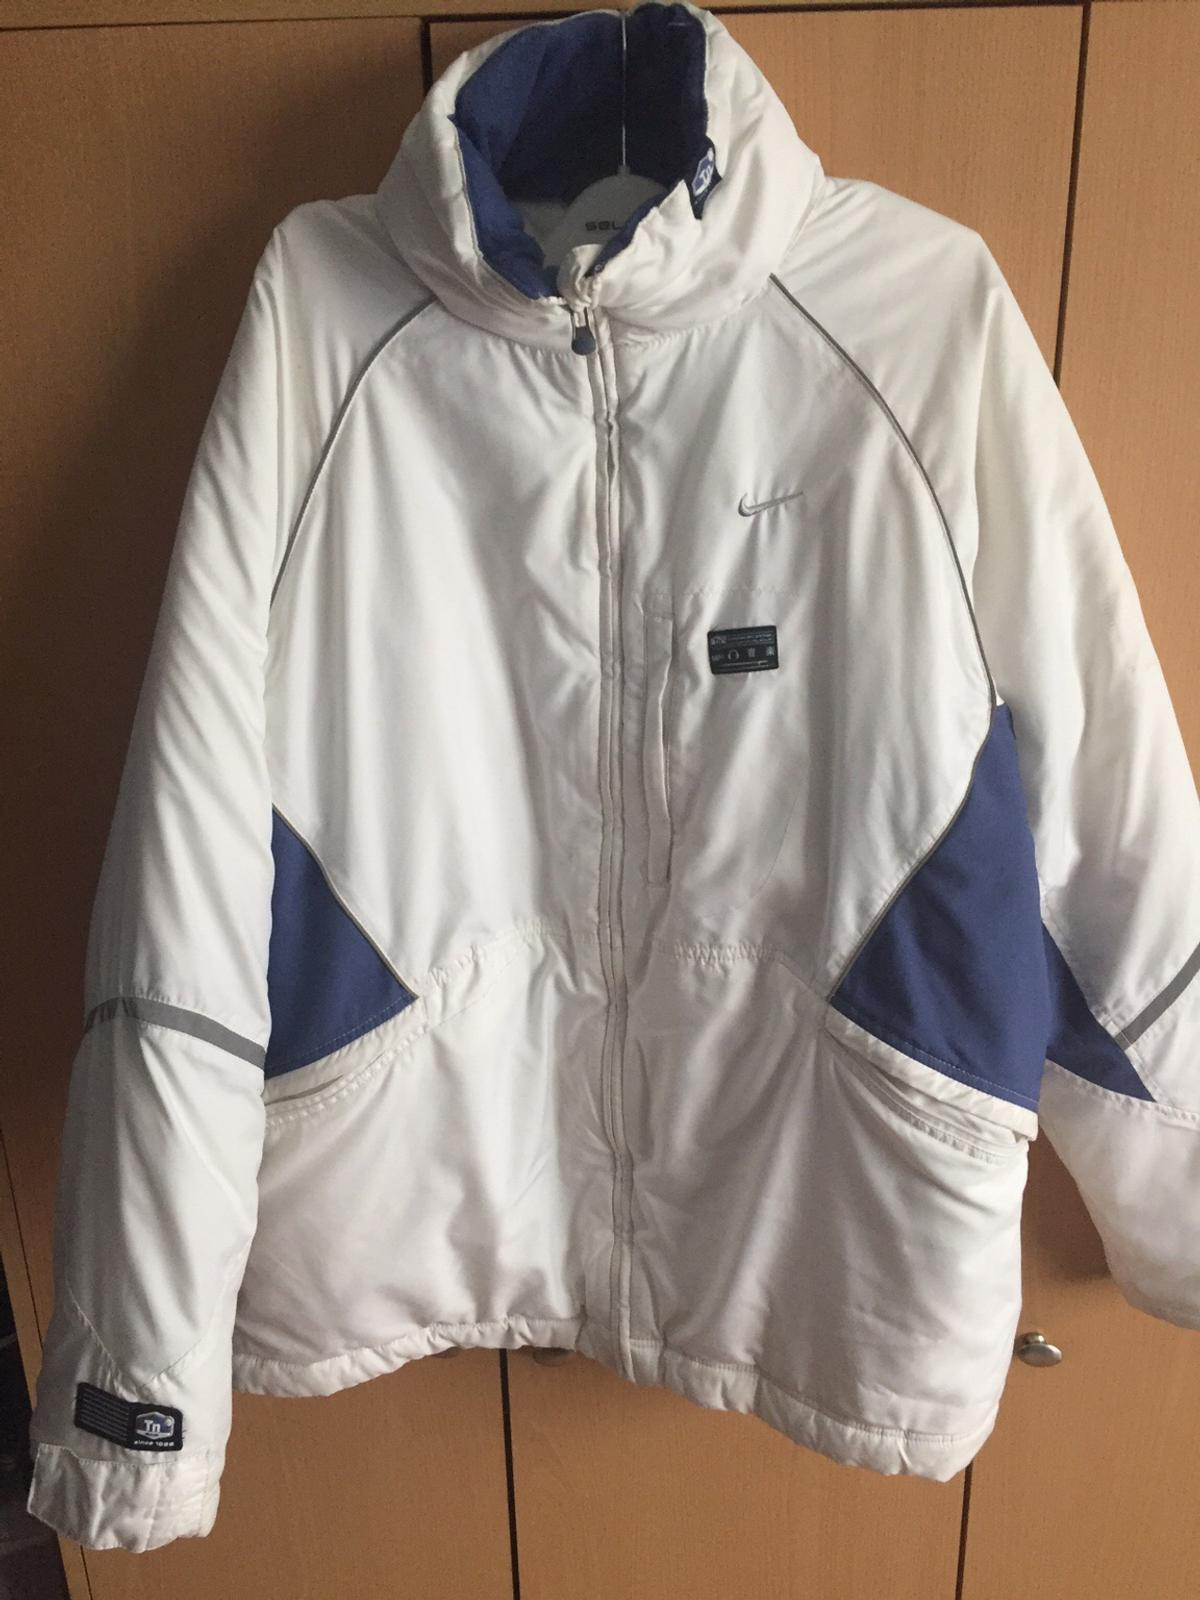 Vintage Nike puffer jacket in CF Cardiff for £25.00 for sale